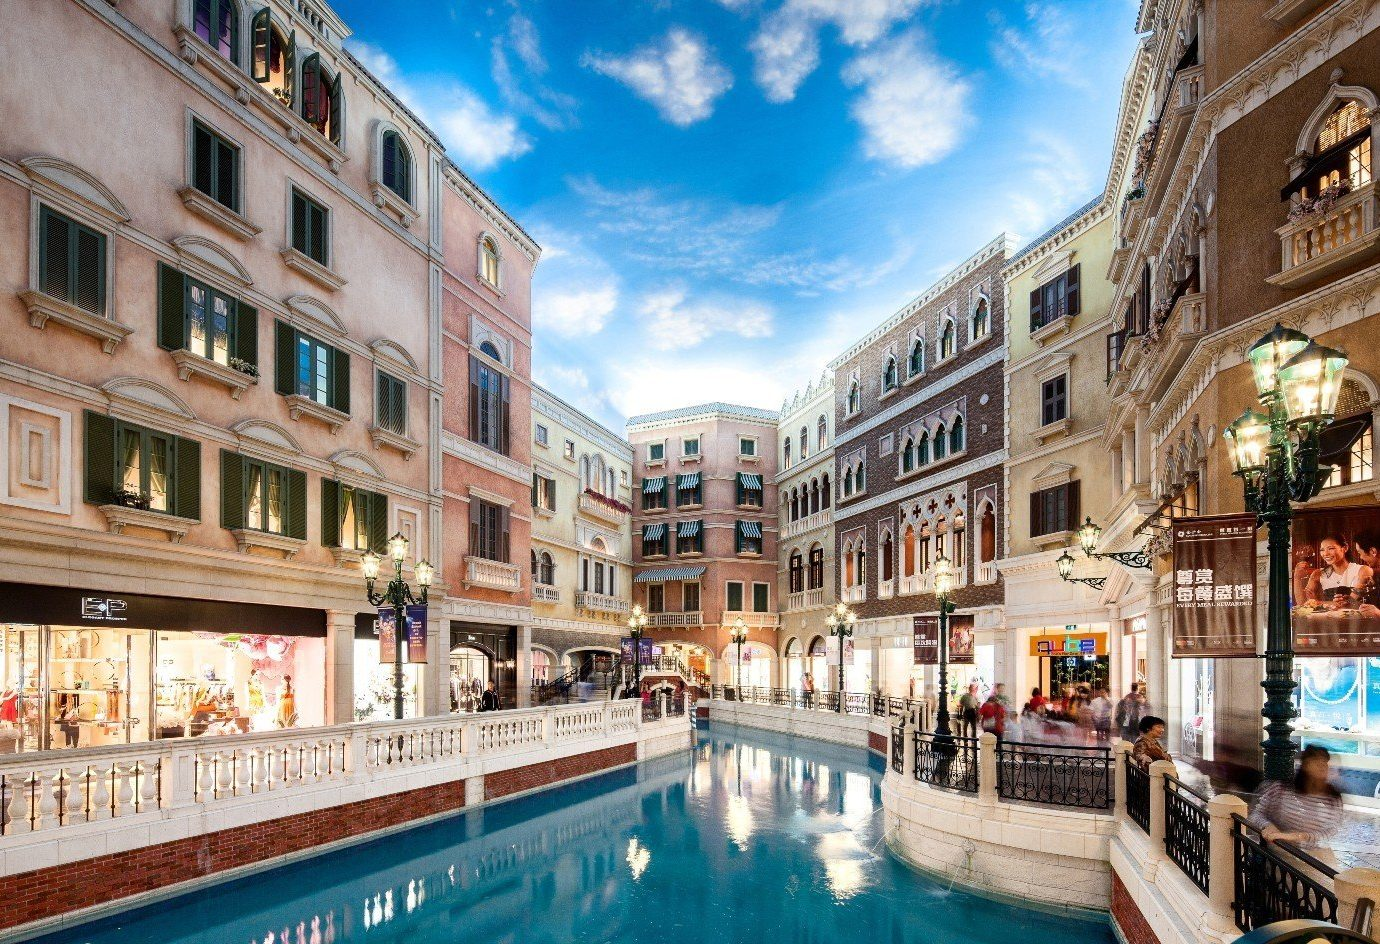 Hotels building outdoor geographical feature plaza Town landmark waterway vacation tourism cityscape town square Downtown Canal City estate palace